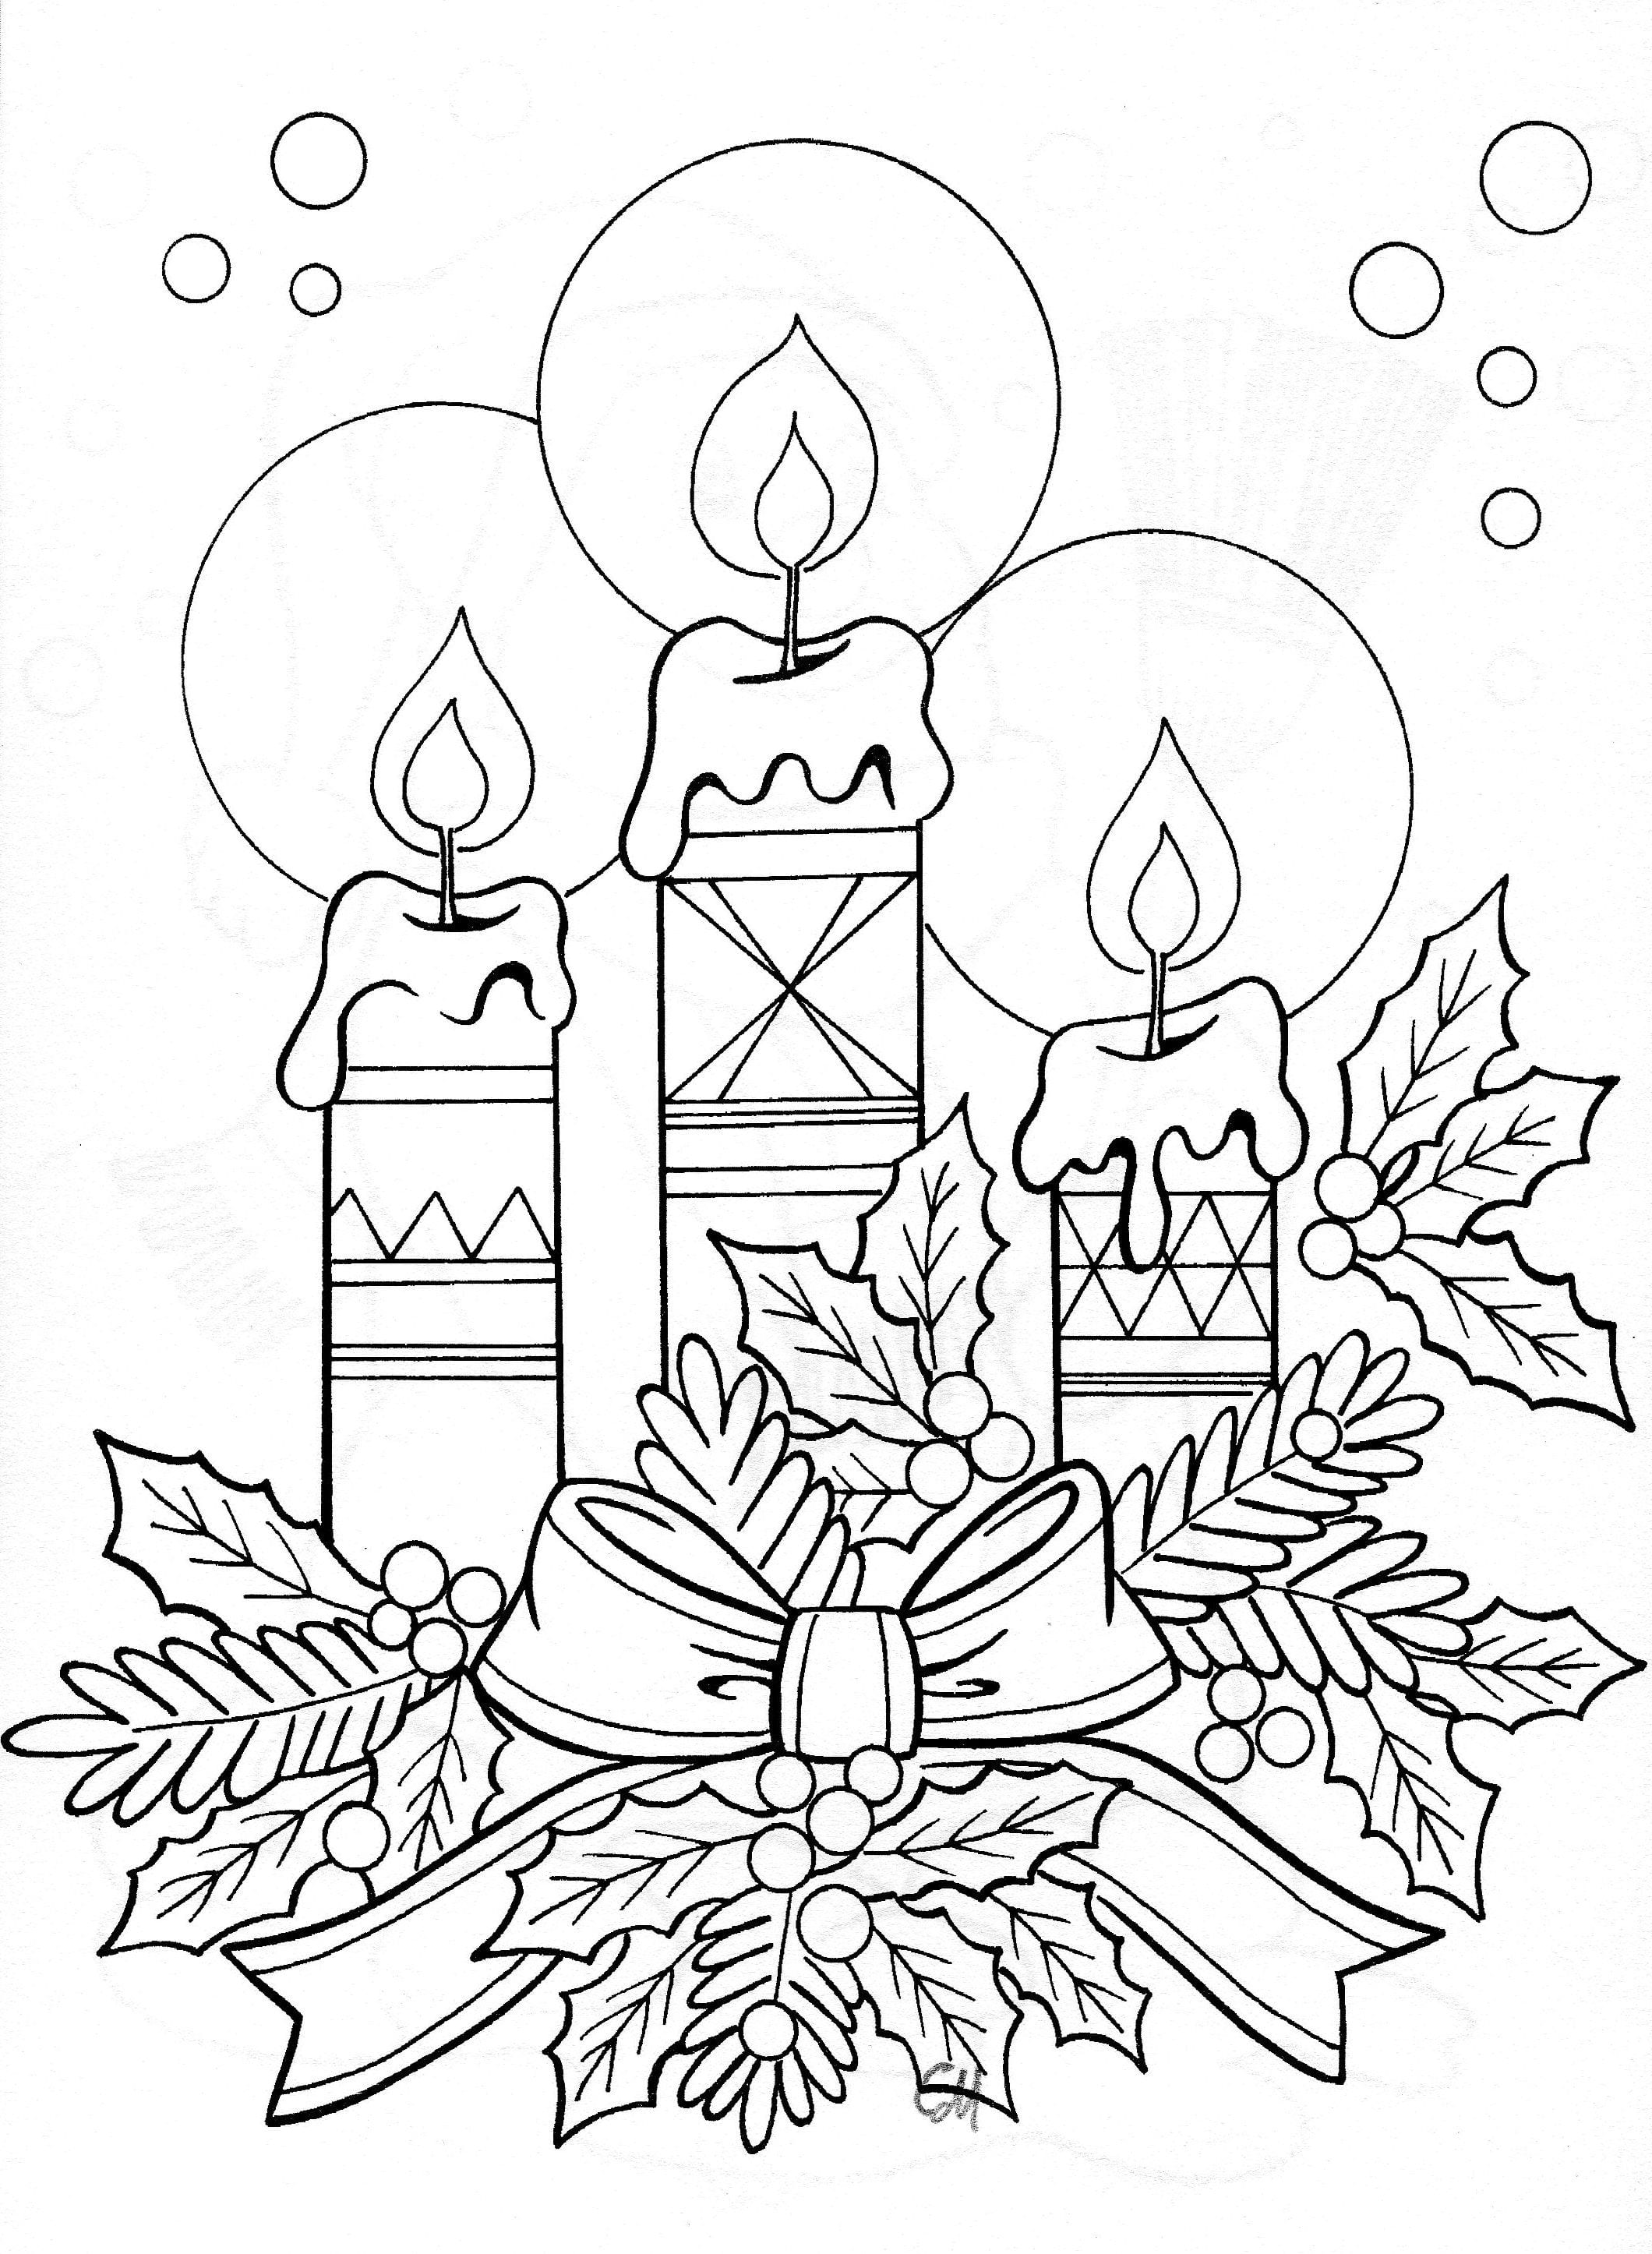 Christmas candles colouring in page